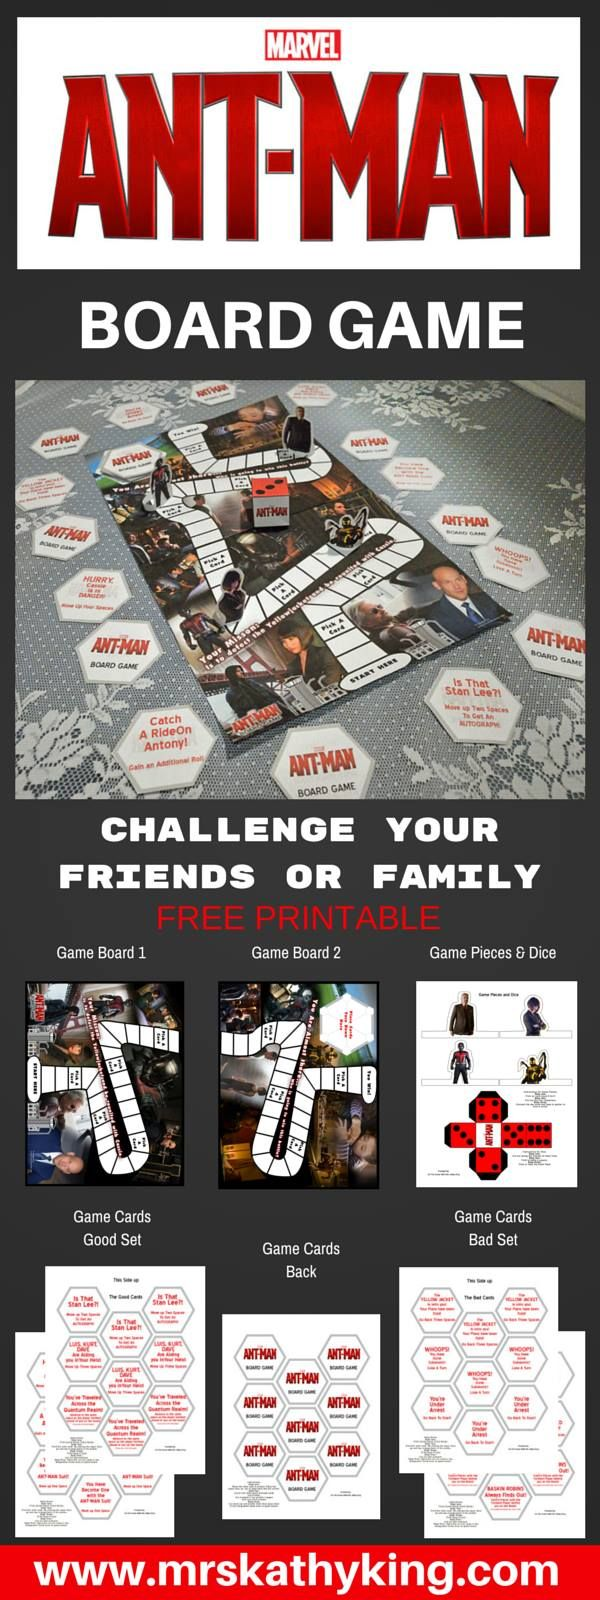 Looking for a fun AntMan board game to play? Here is a Free Ant-Man Broard Game Printable we made to celebrate the release of the movie. The game includes 36 Pick a Cards 4 Game Figures, Board & die #antmanevent #antman